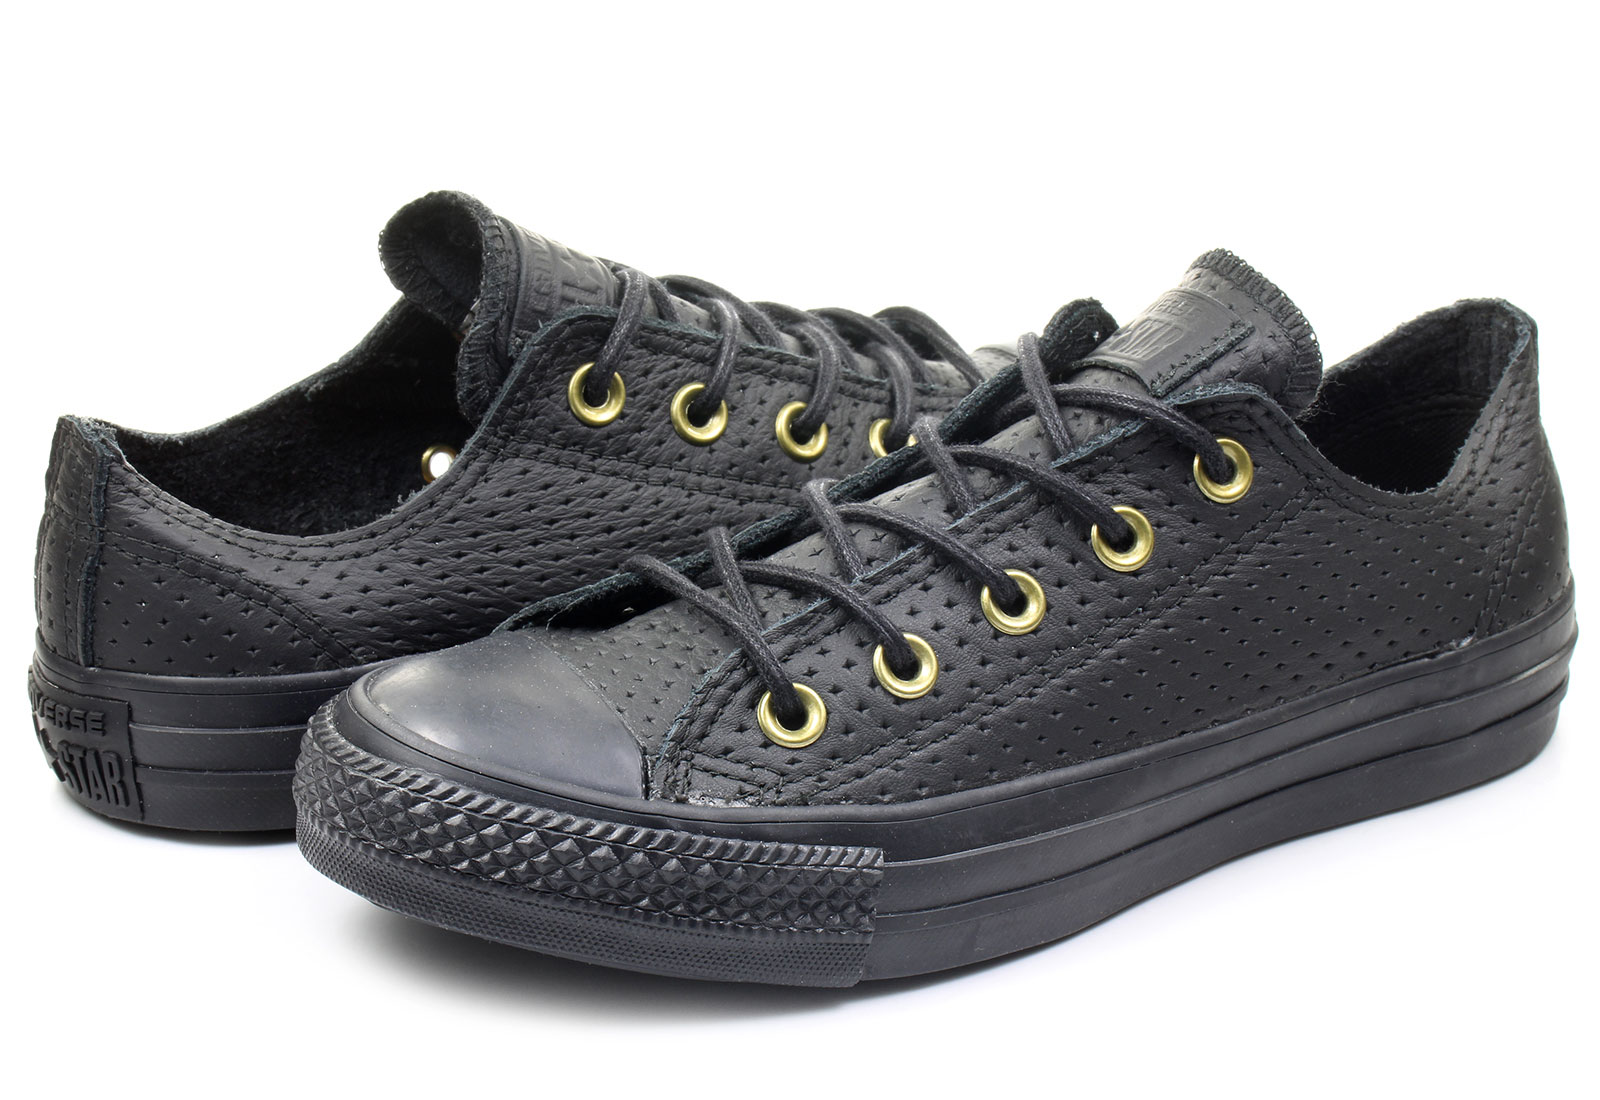 Converse Nízké boty - Chuck Taylor All Star Leather Ox ... 1f24a6a086